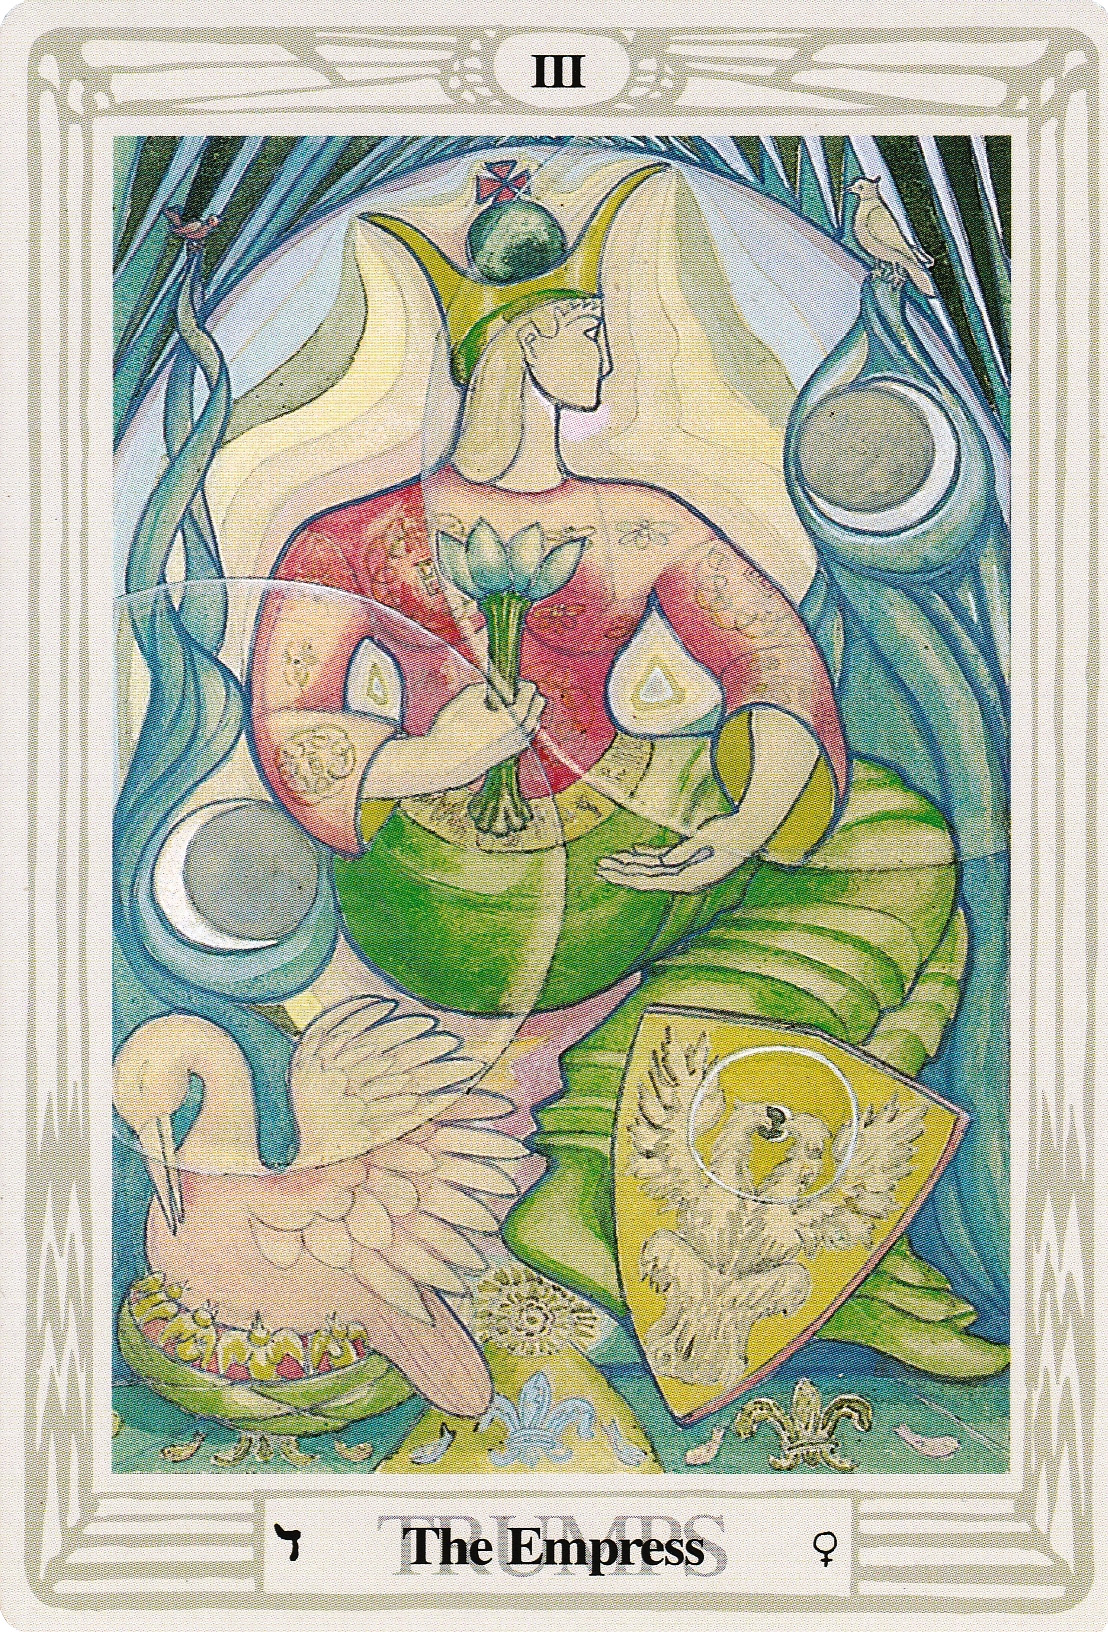 Original illustration from the Thoth tarot deck of The Empress as painted by Lady Frieda Harris.